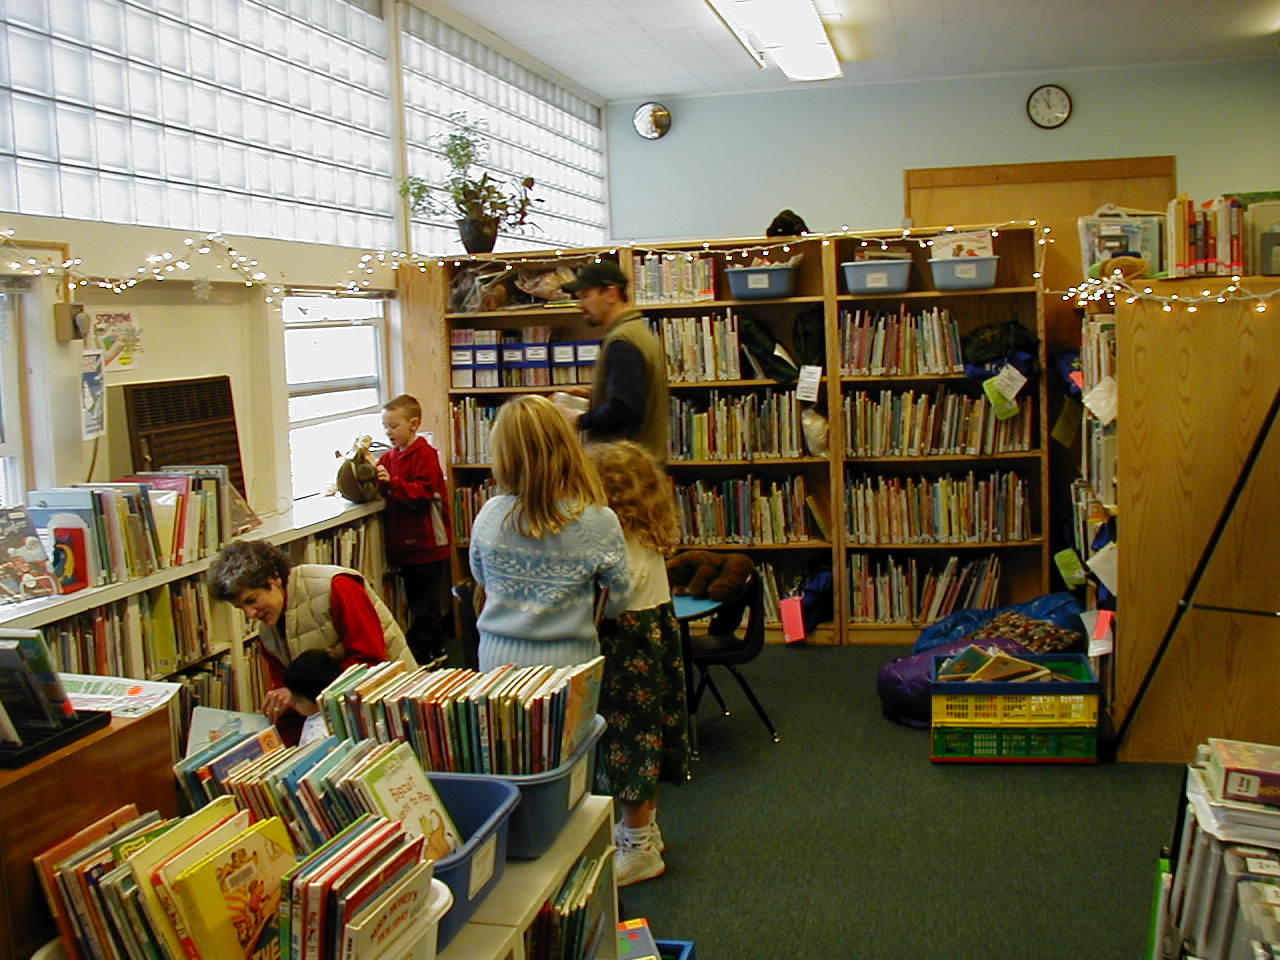 History of Garden Home Community Library | Garden Home History Project